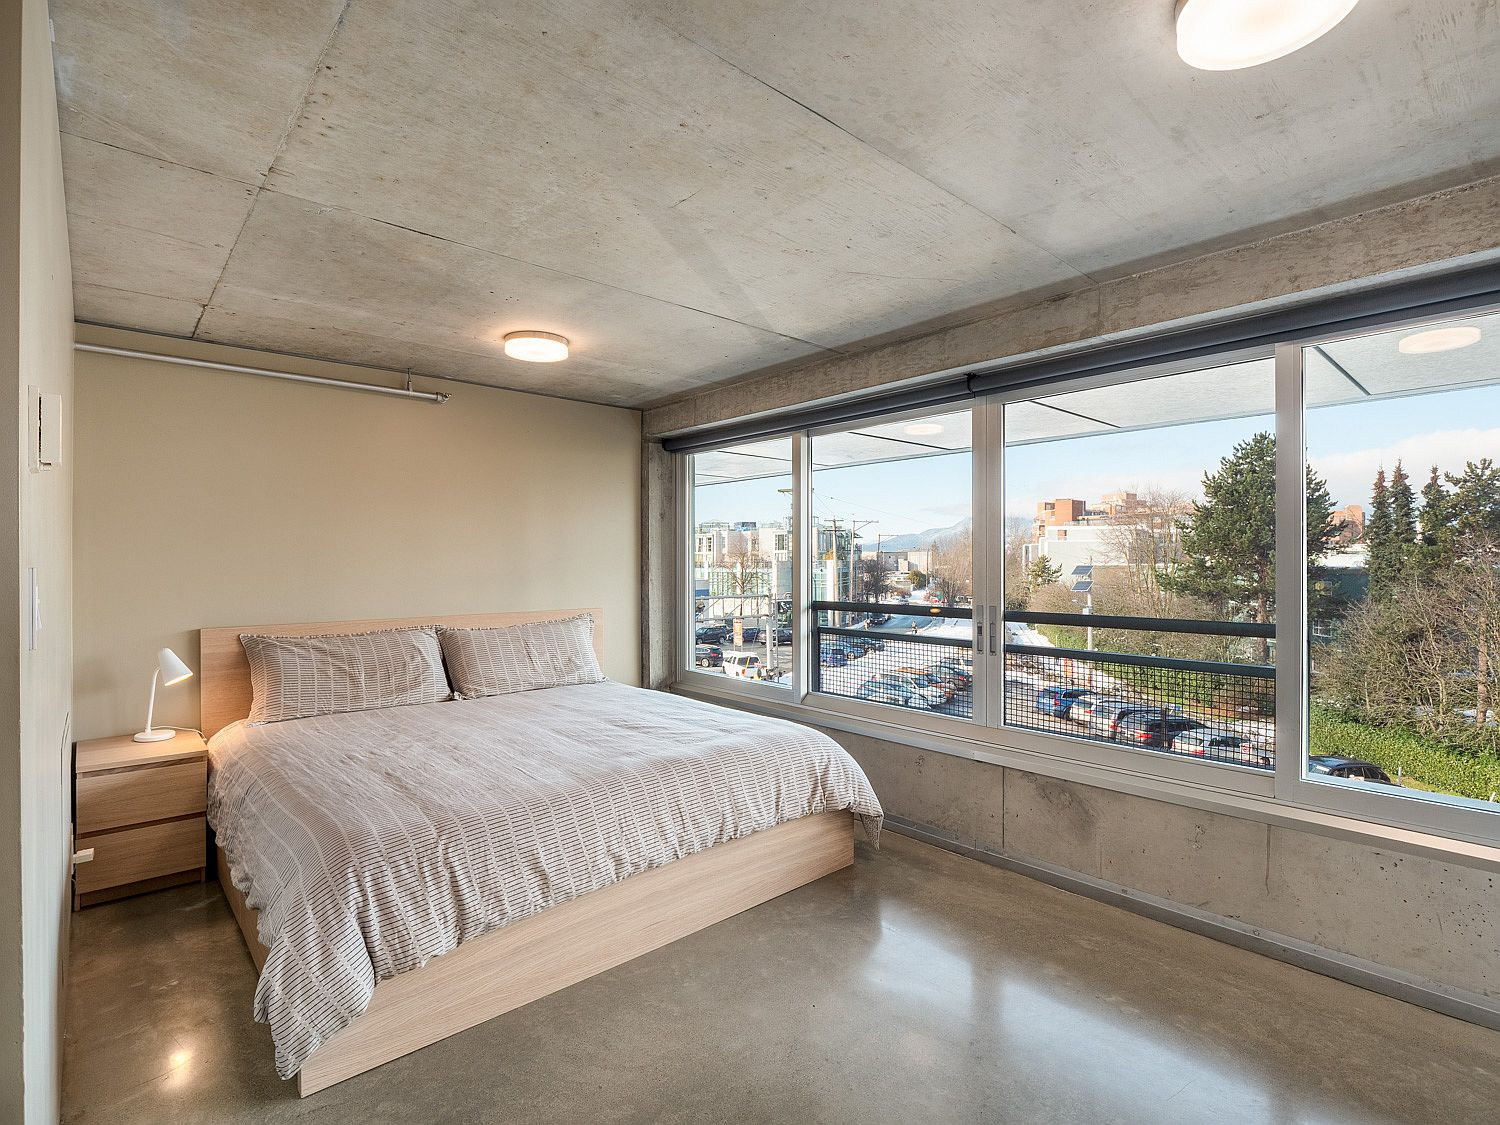 Concrete ceiling and walls for the crisp modern bedroom